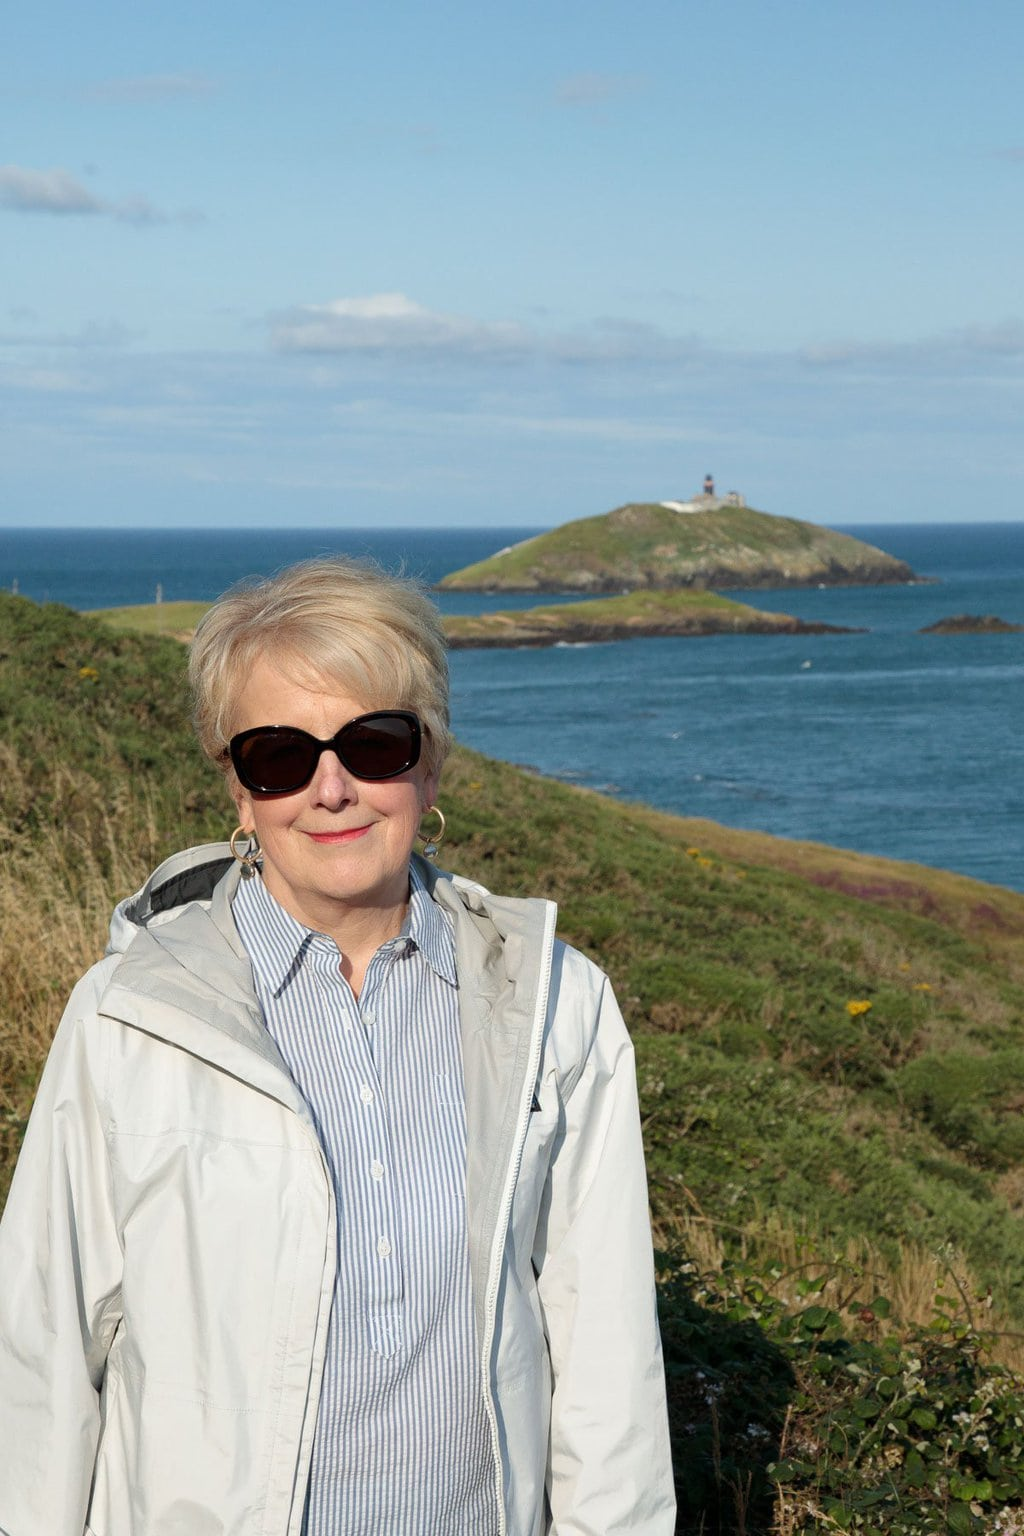 Photo of Chris on the Ballycotton Cliff Walk in East Cork, Ireland.